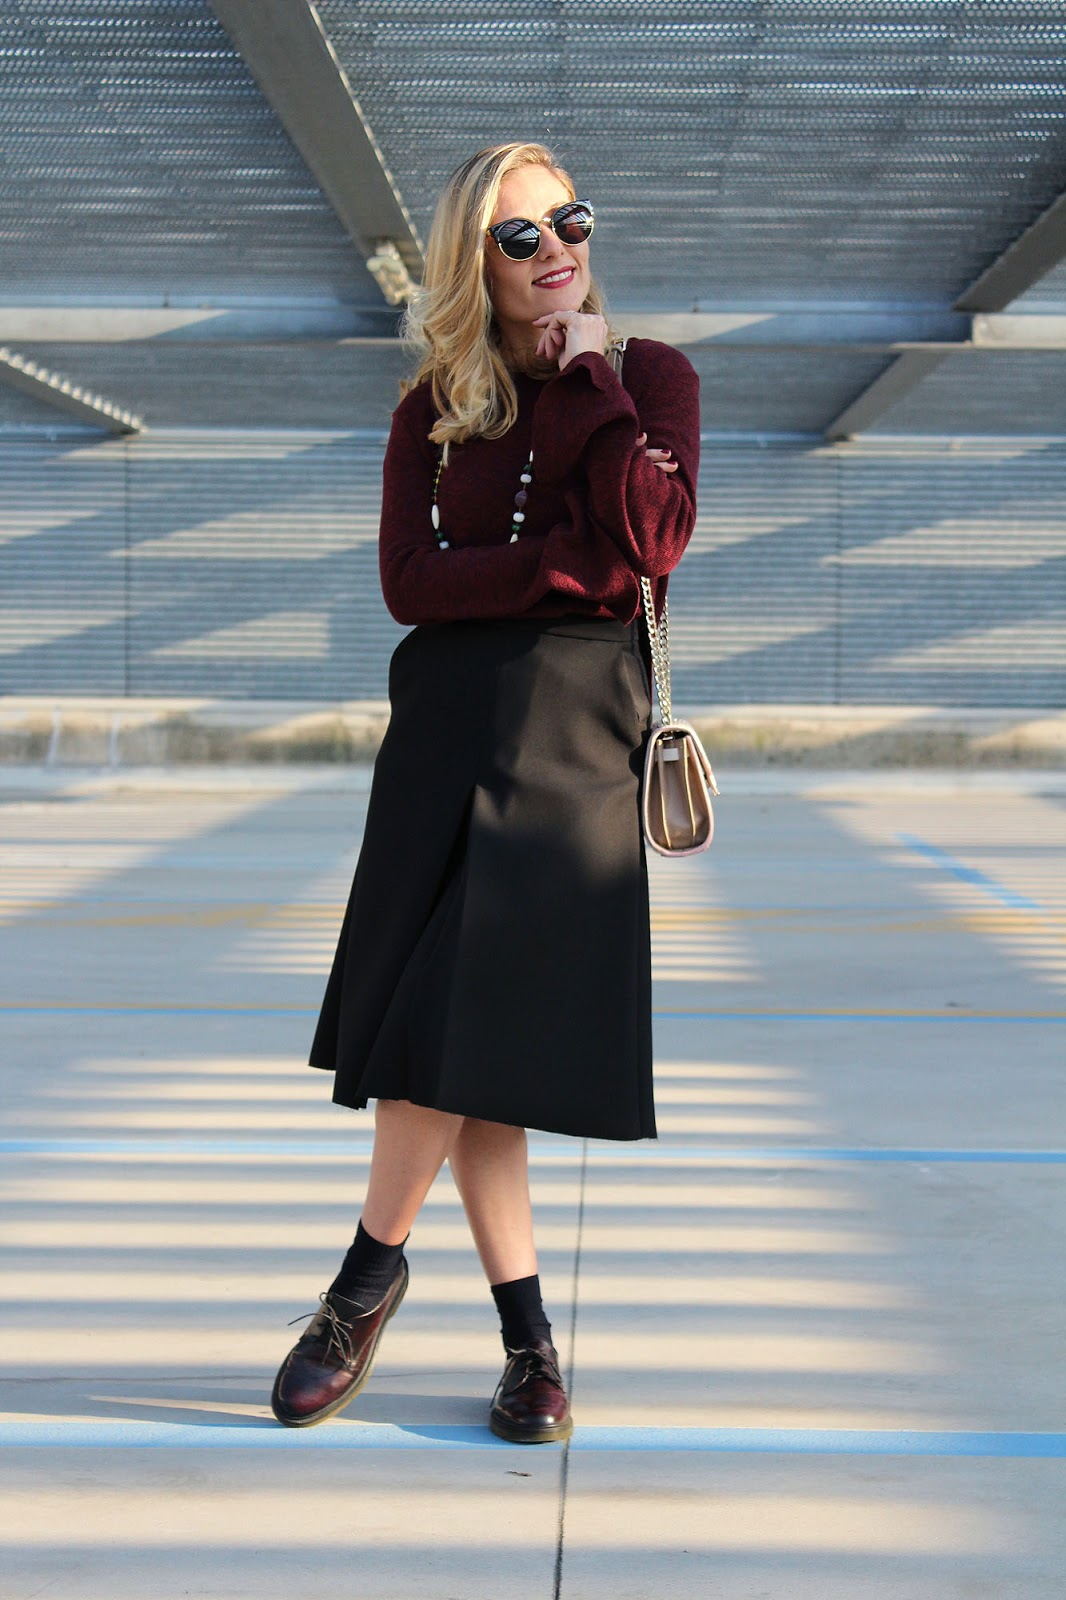 Eniwhere Fashion - Midi skirt e stringate ootd